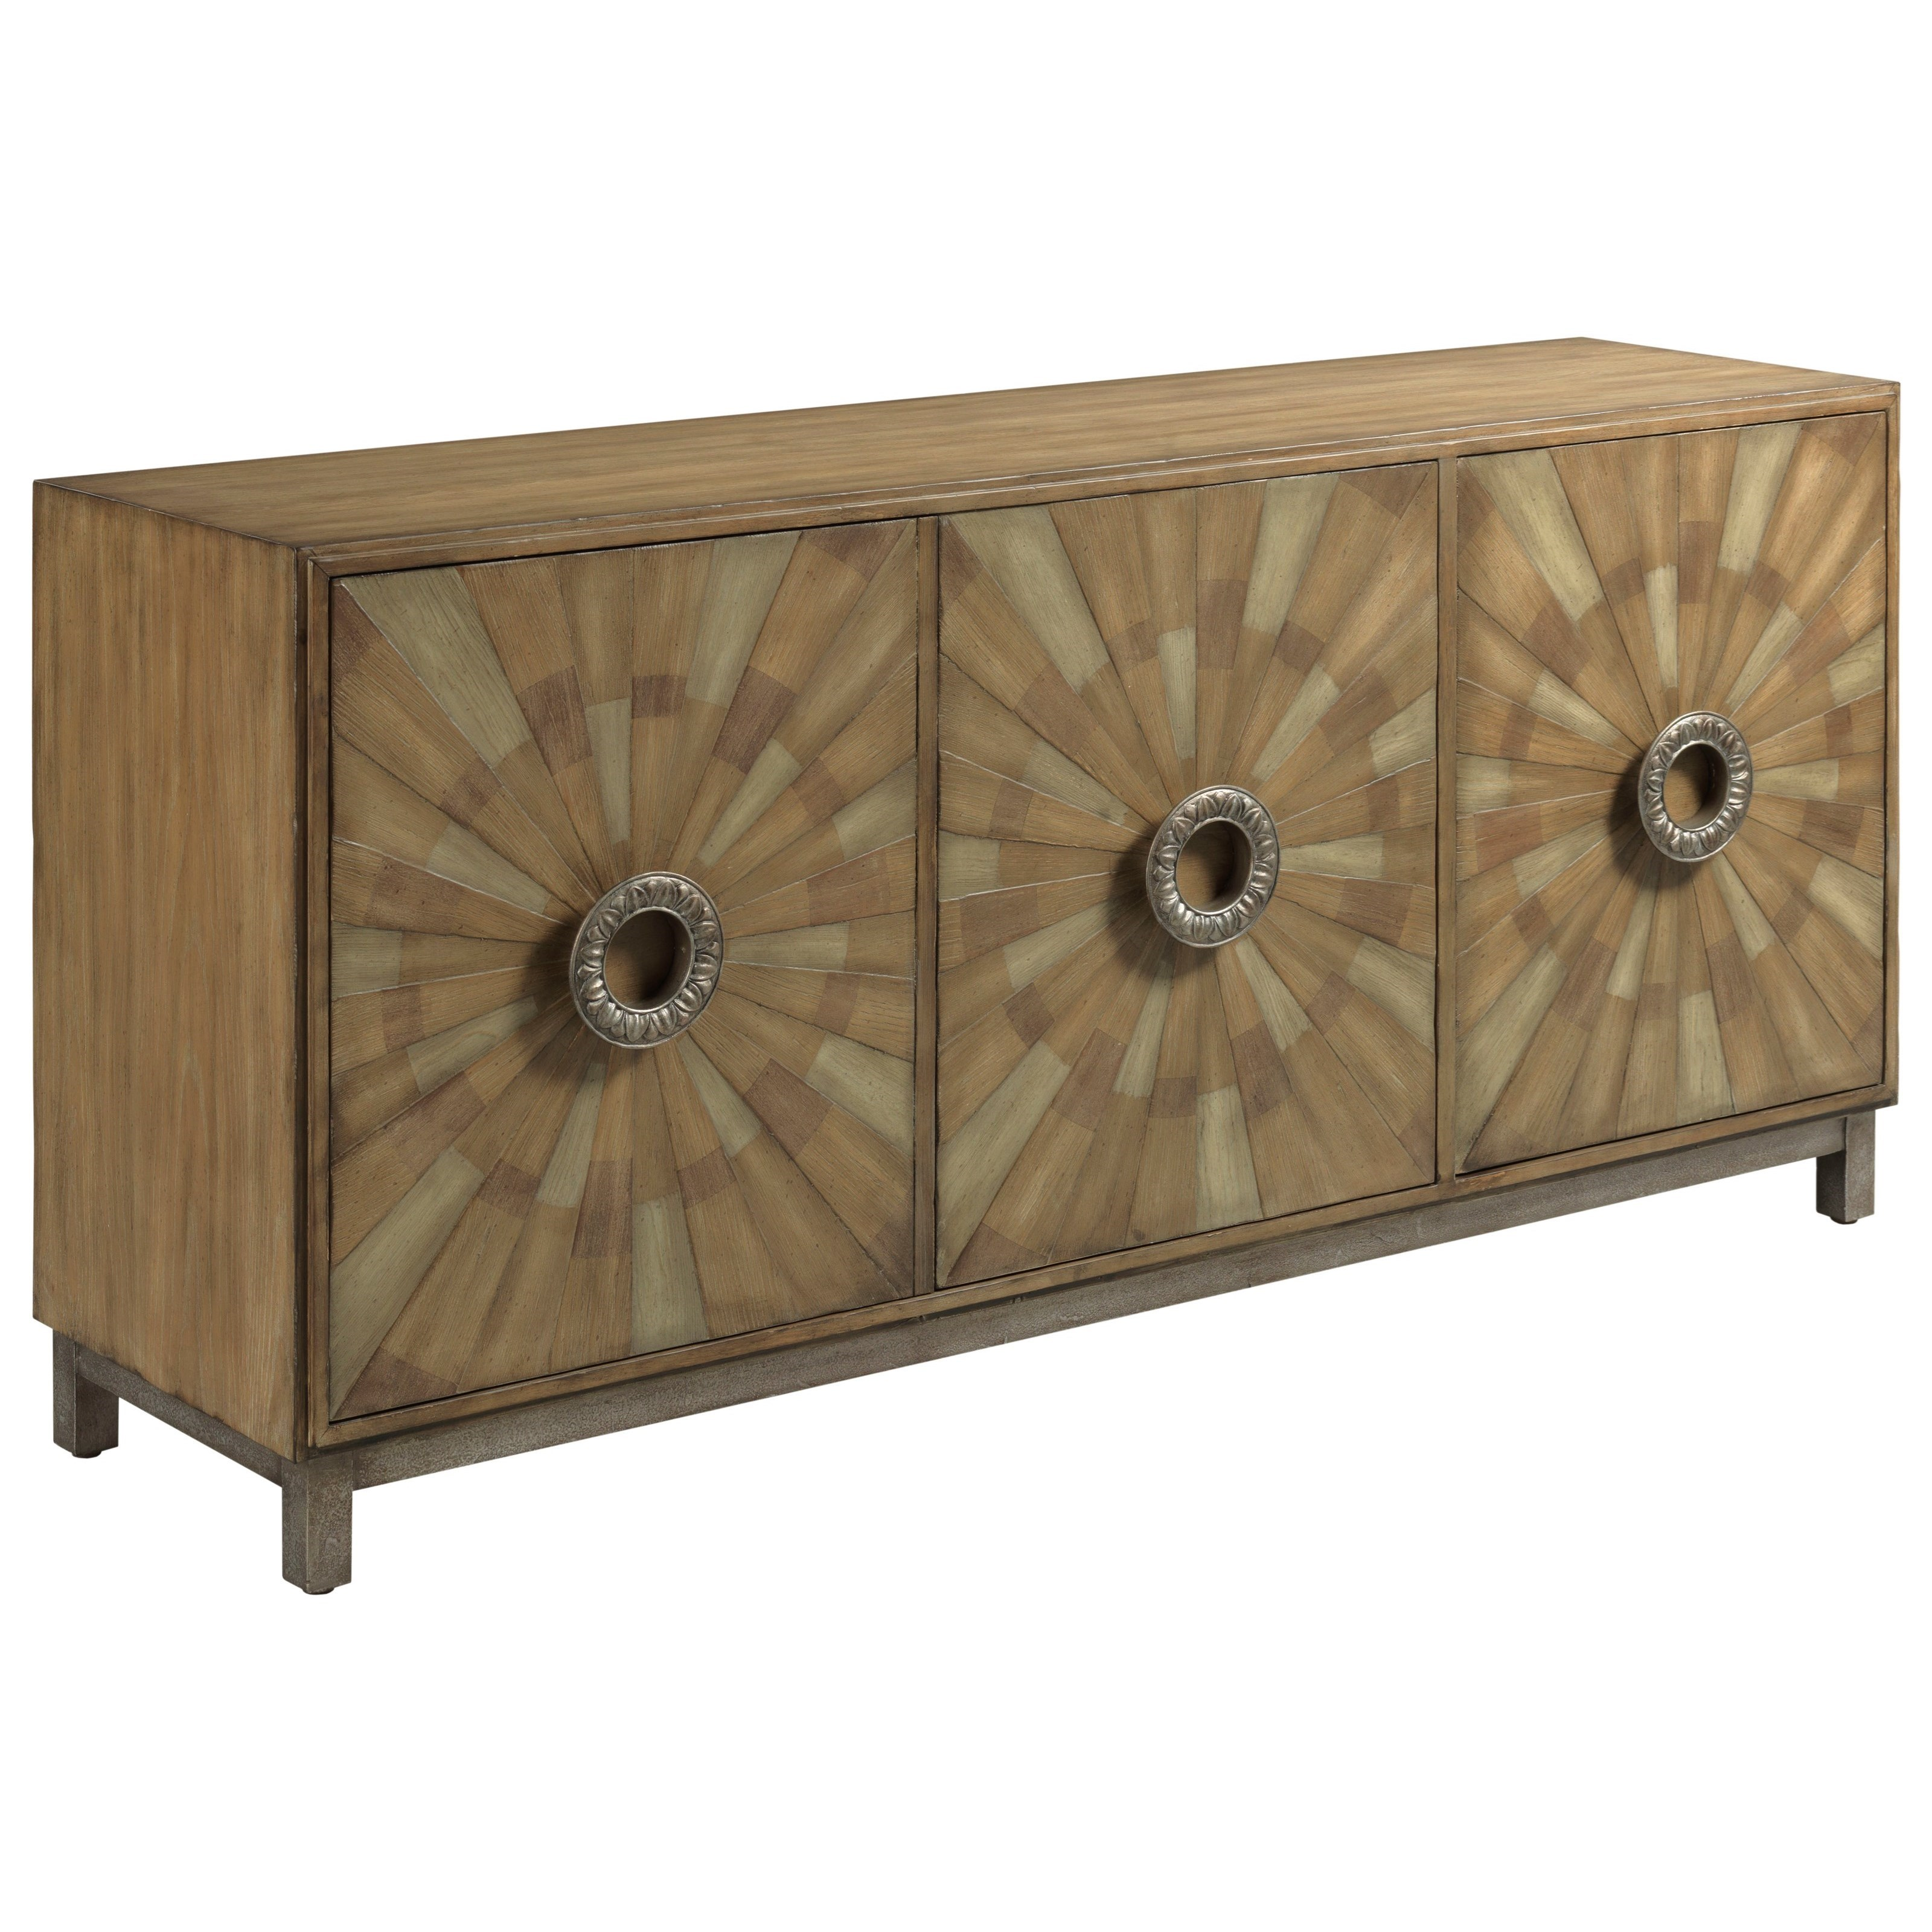 Astor Accent Chest by Table Trends at Sprintz Furniture